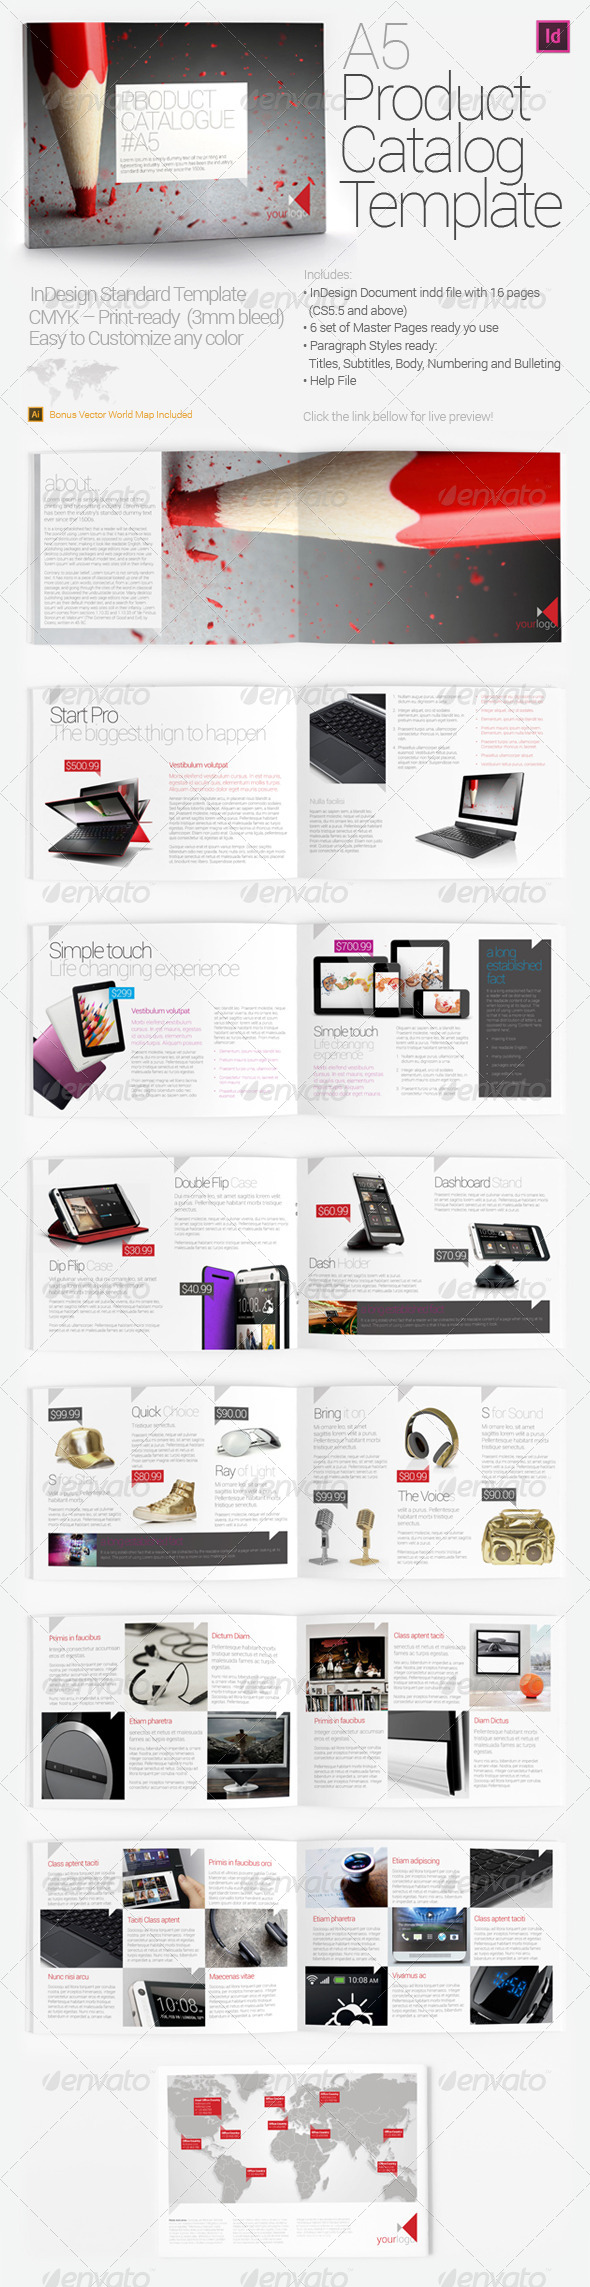 GraphicRiver A5 Product Catalog Template 4453390